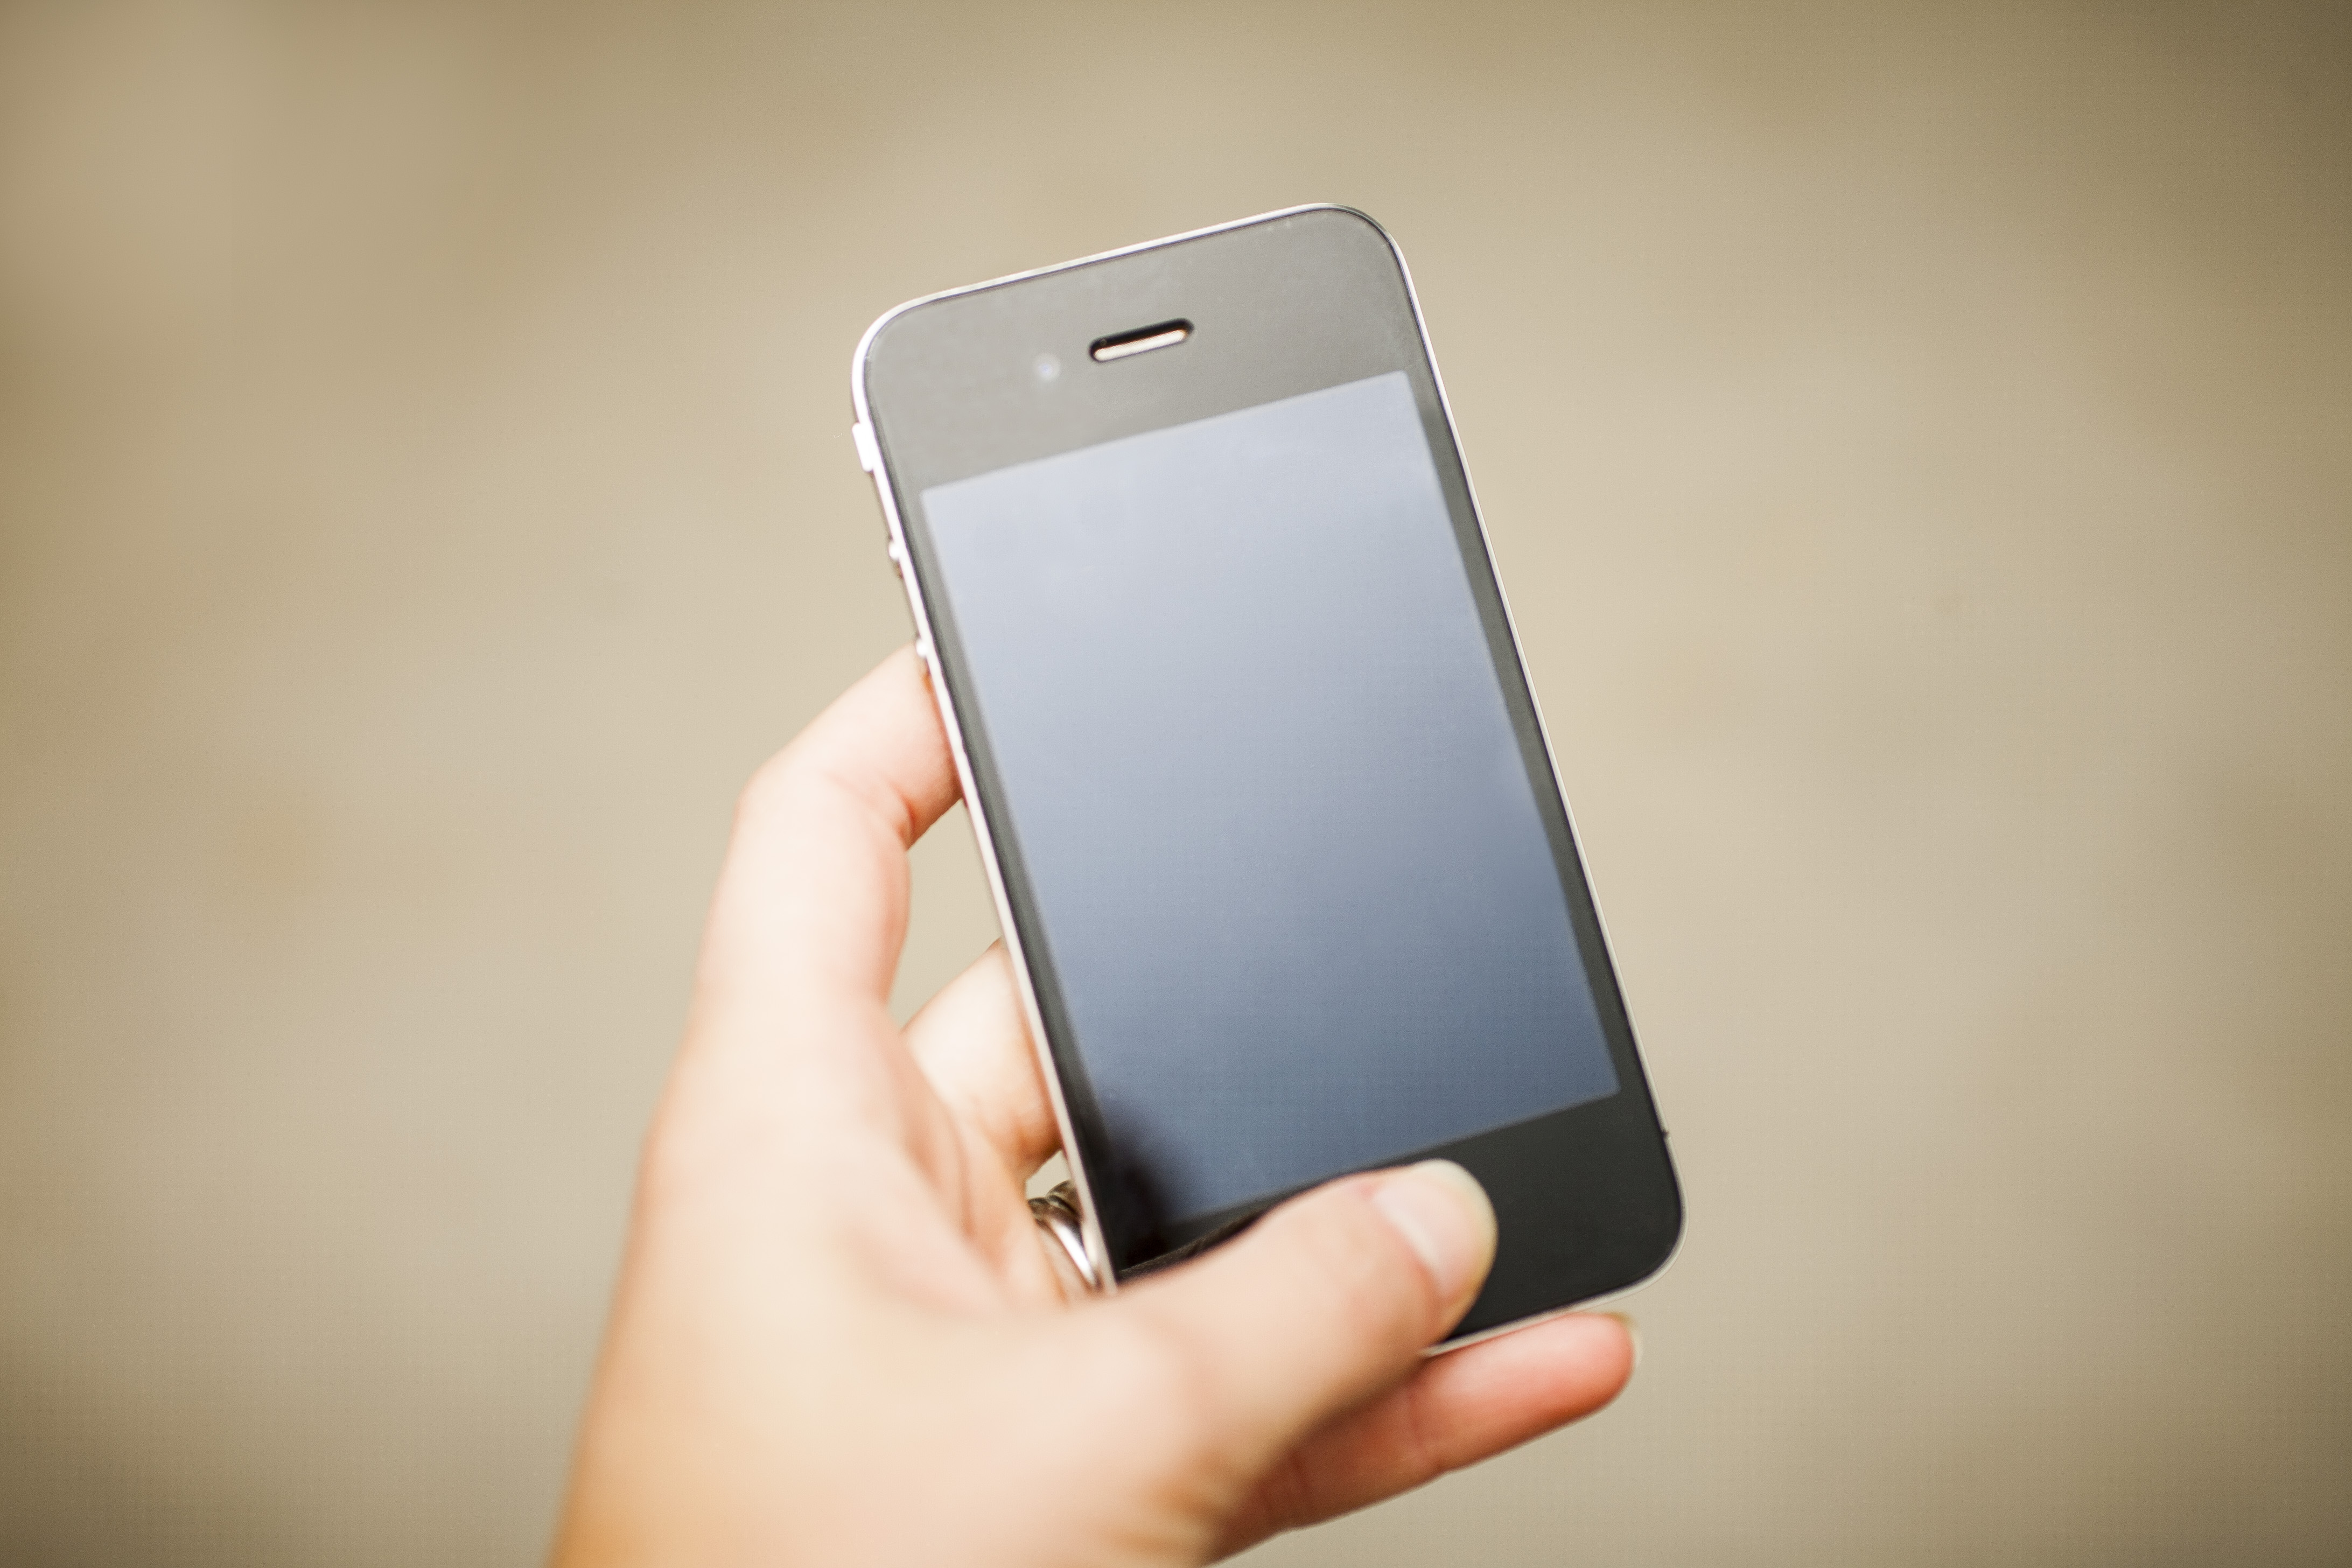 Key Considerations for Developing a Mobile Device Policy